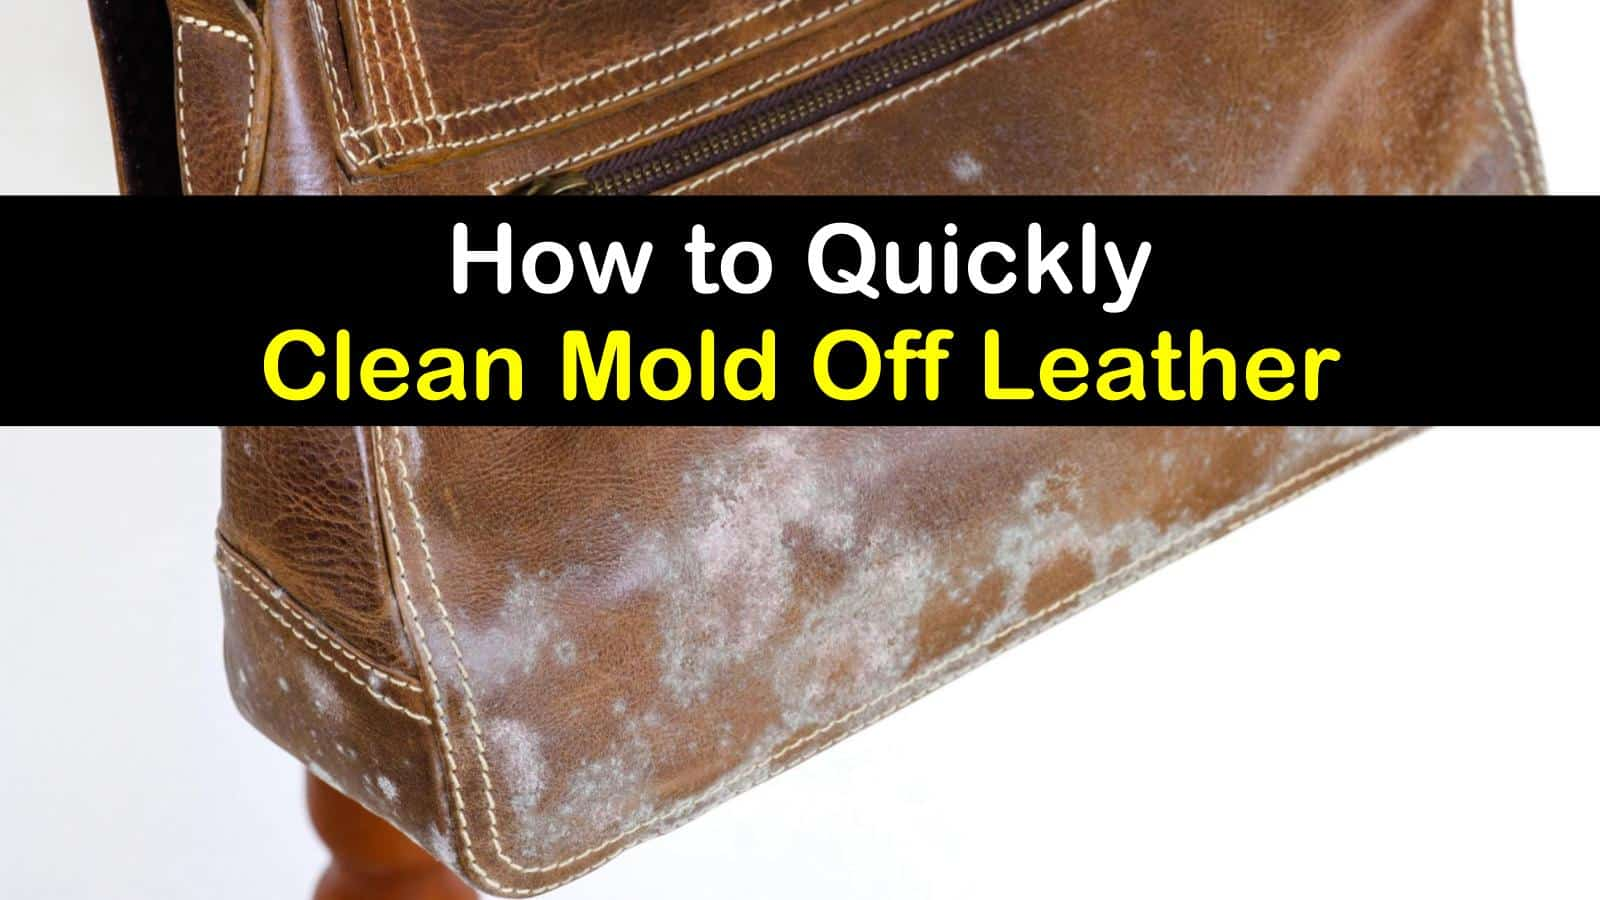 how to clean mold off leather titleimg1